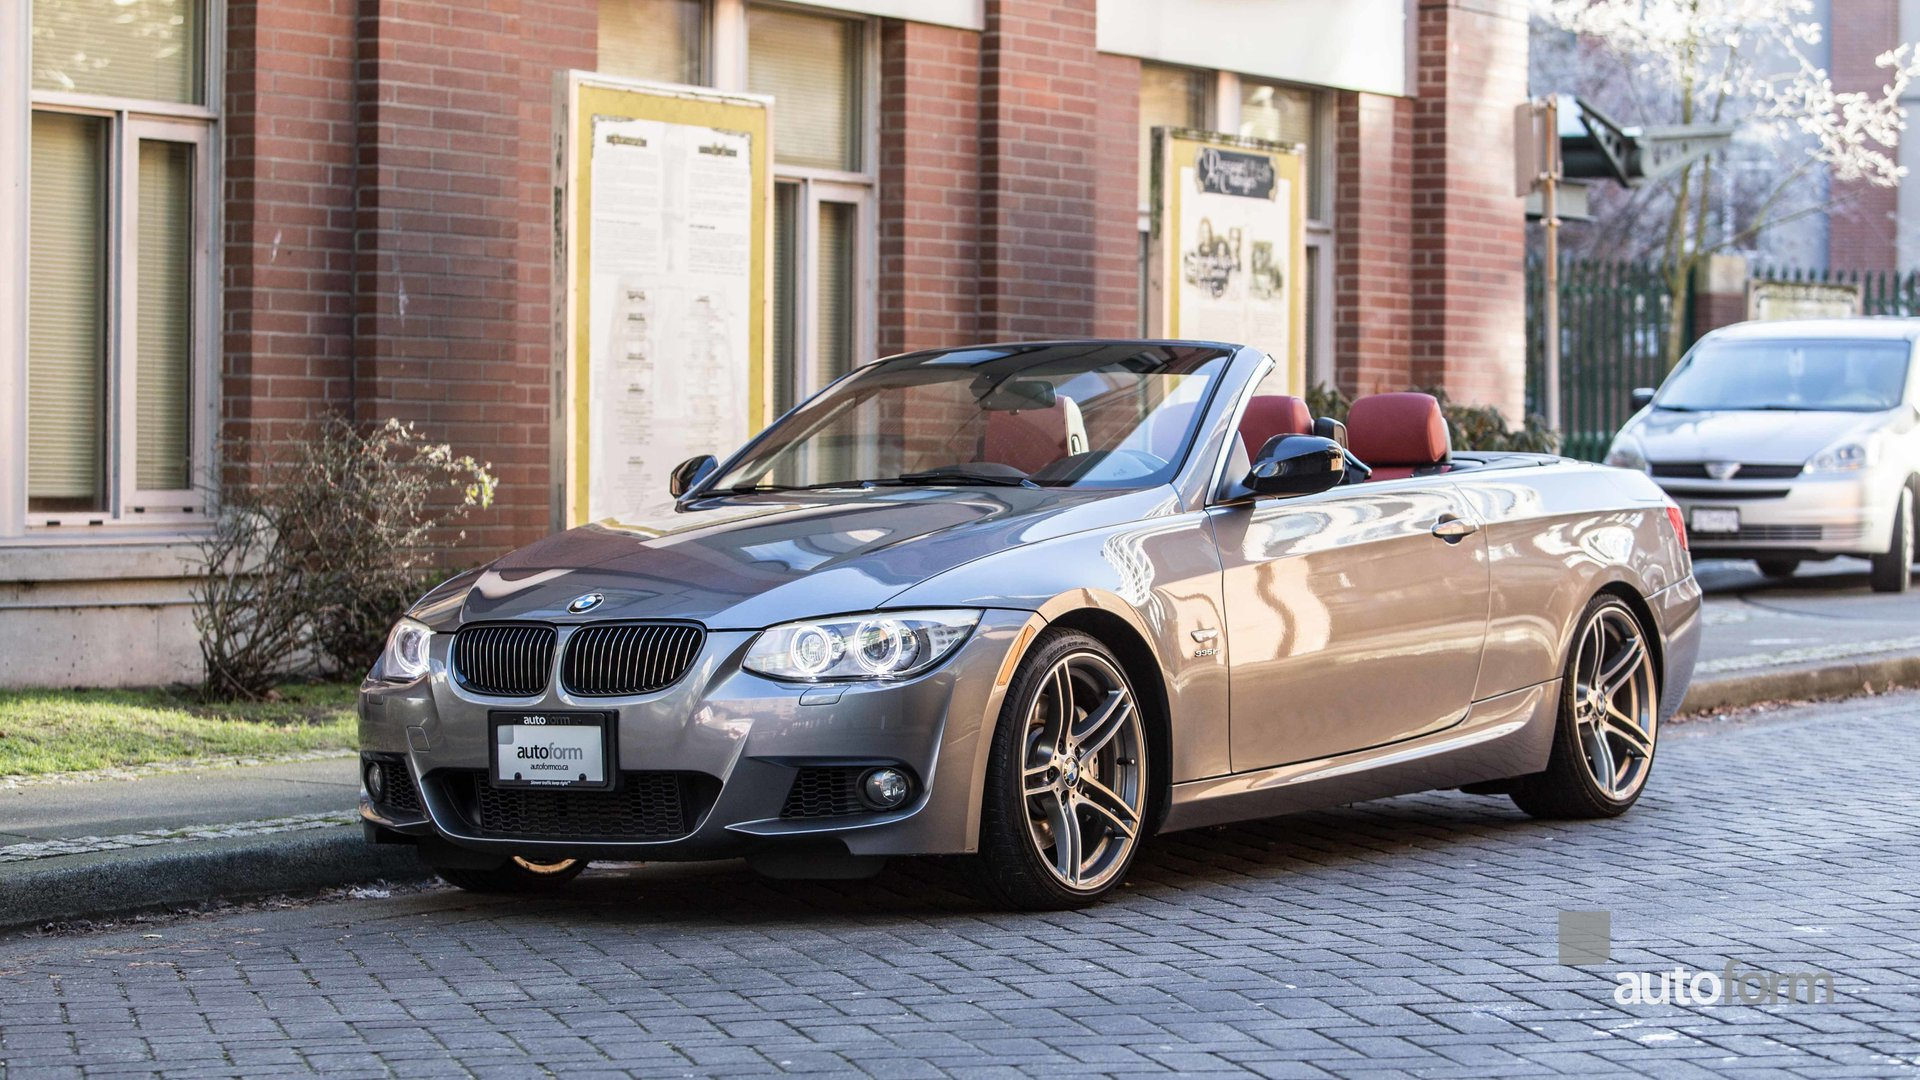 2011 bmw 335is cabriolet low km warranty to 2018